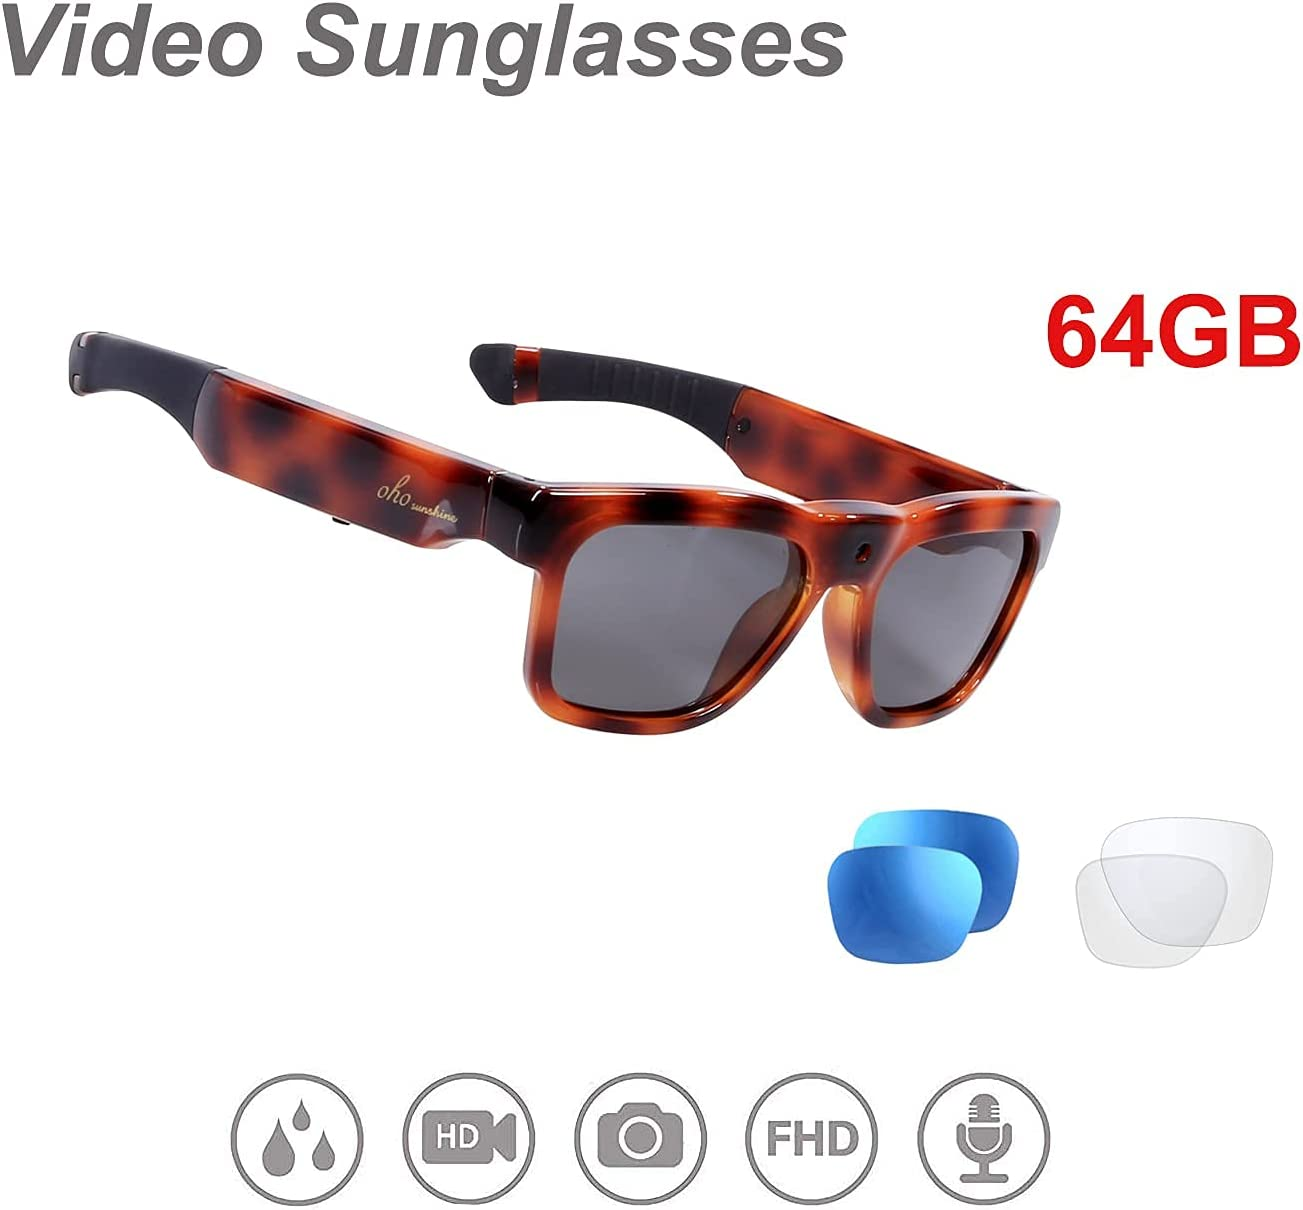 OhO Mini Camera Sunglasses, Water Resistance Ultra Full HD Camera with Built-in 64GB Memory and UV 400 Polarized Sunglasses Lens for Indoor and Outdoor Use